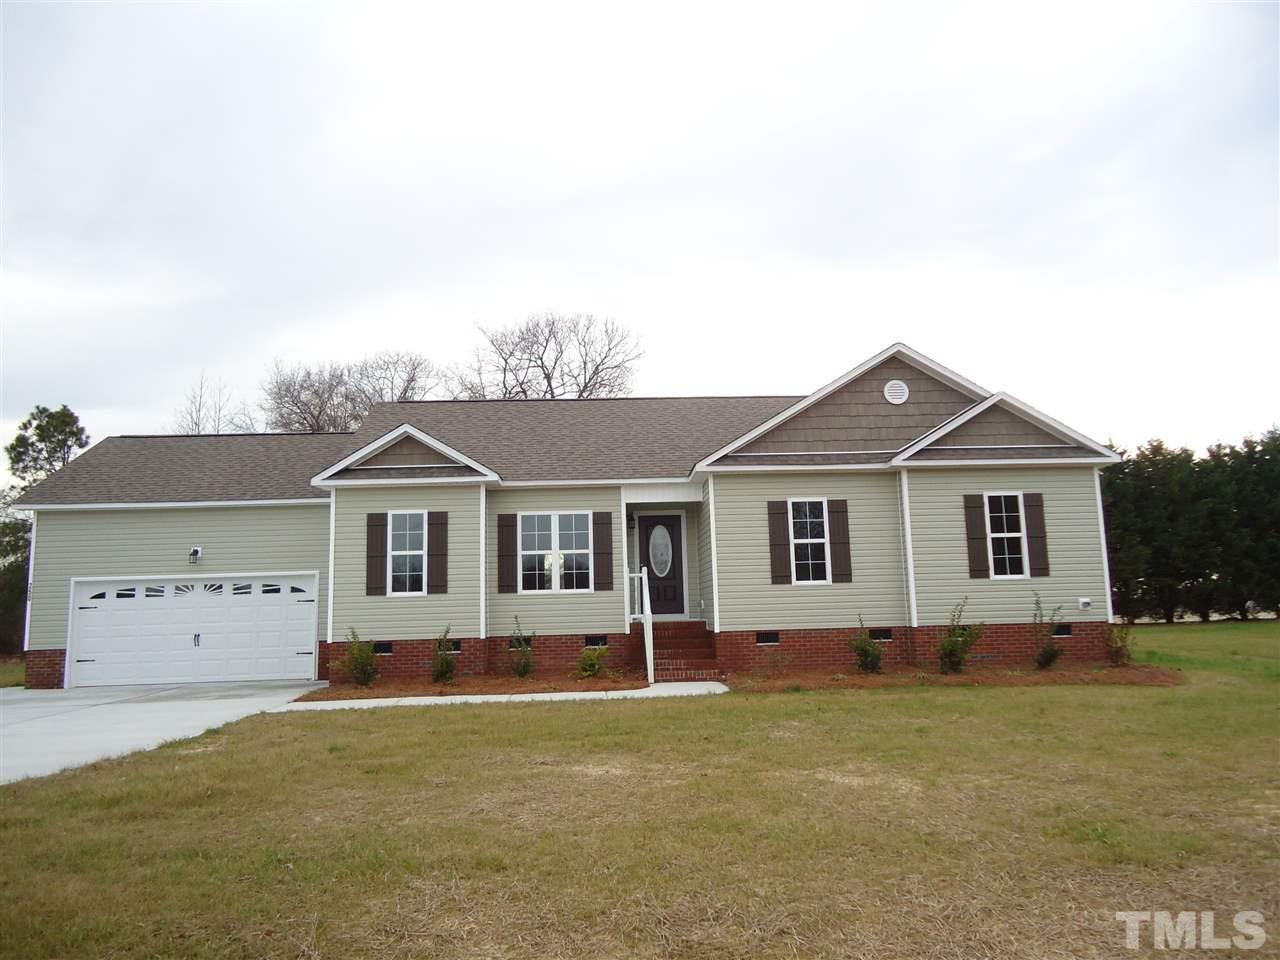 250 Hudson Farms Way Dunn, NC 28334 2147721